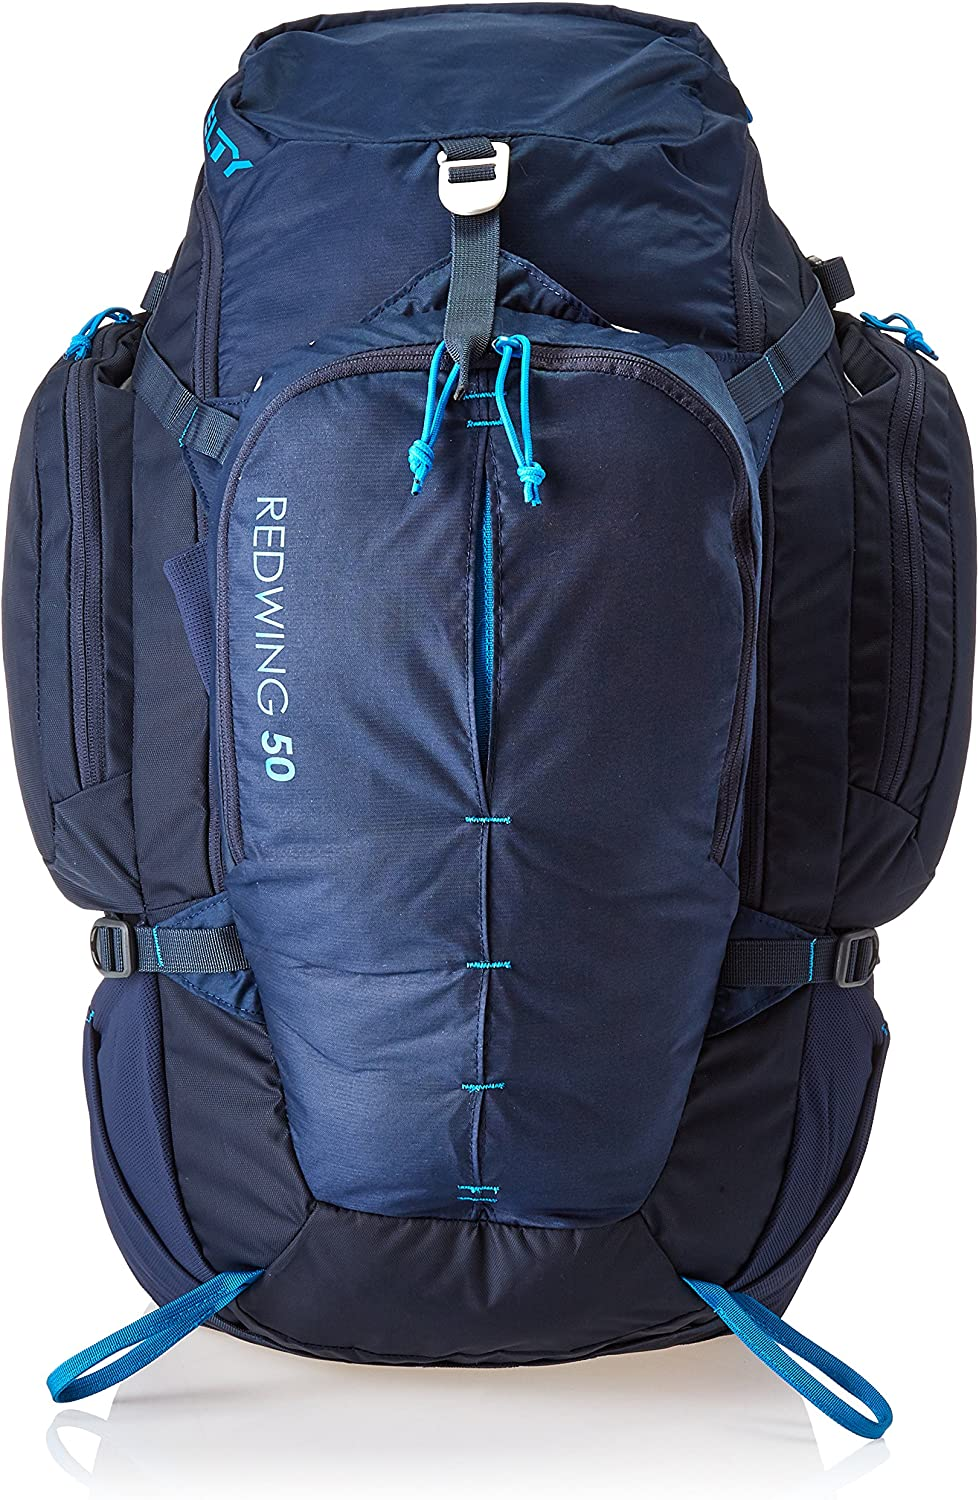 KELTY REDWING 50 BACKPACK - TWILIGHT BLUE